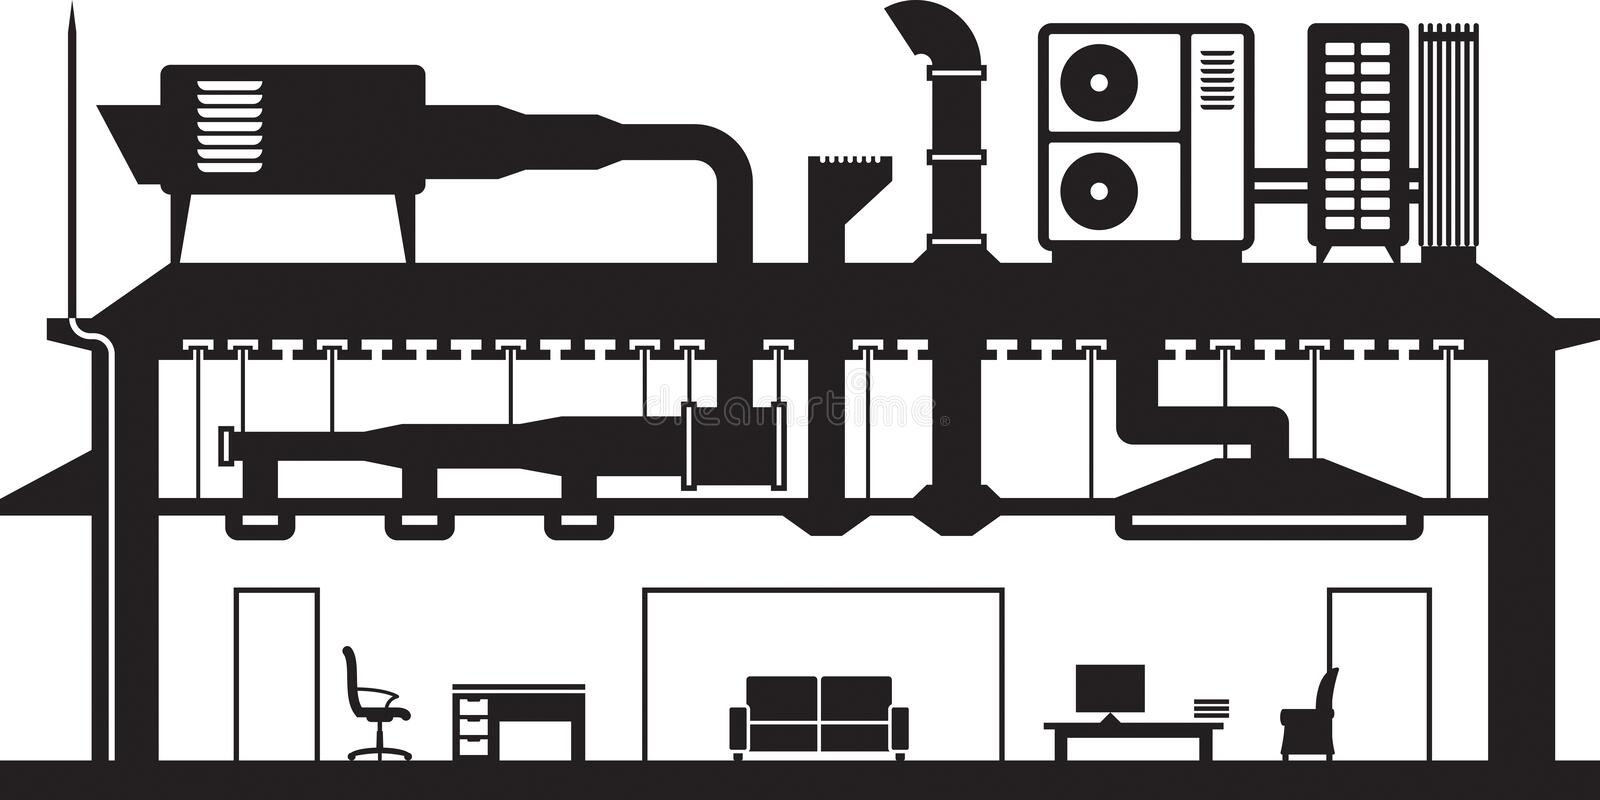 Central air conditioning system for building. Vector illustration royalty free illustration